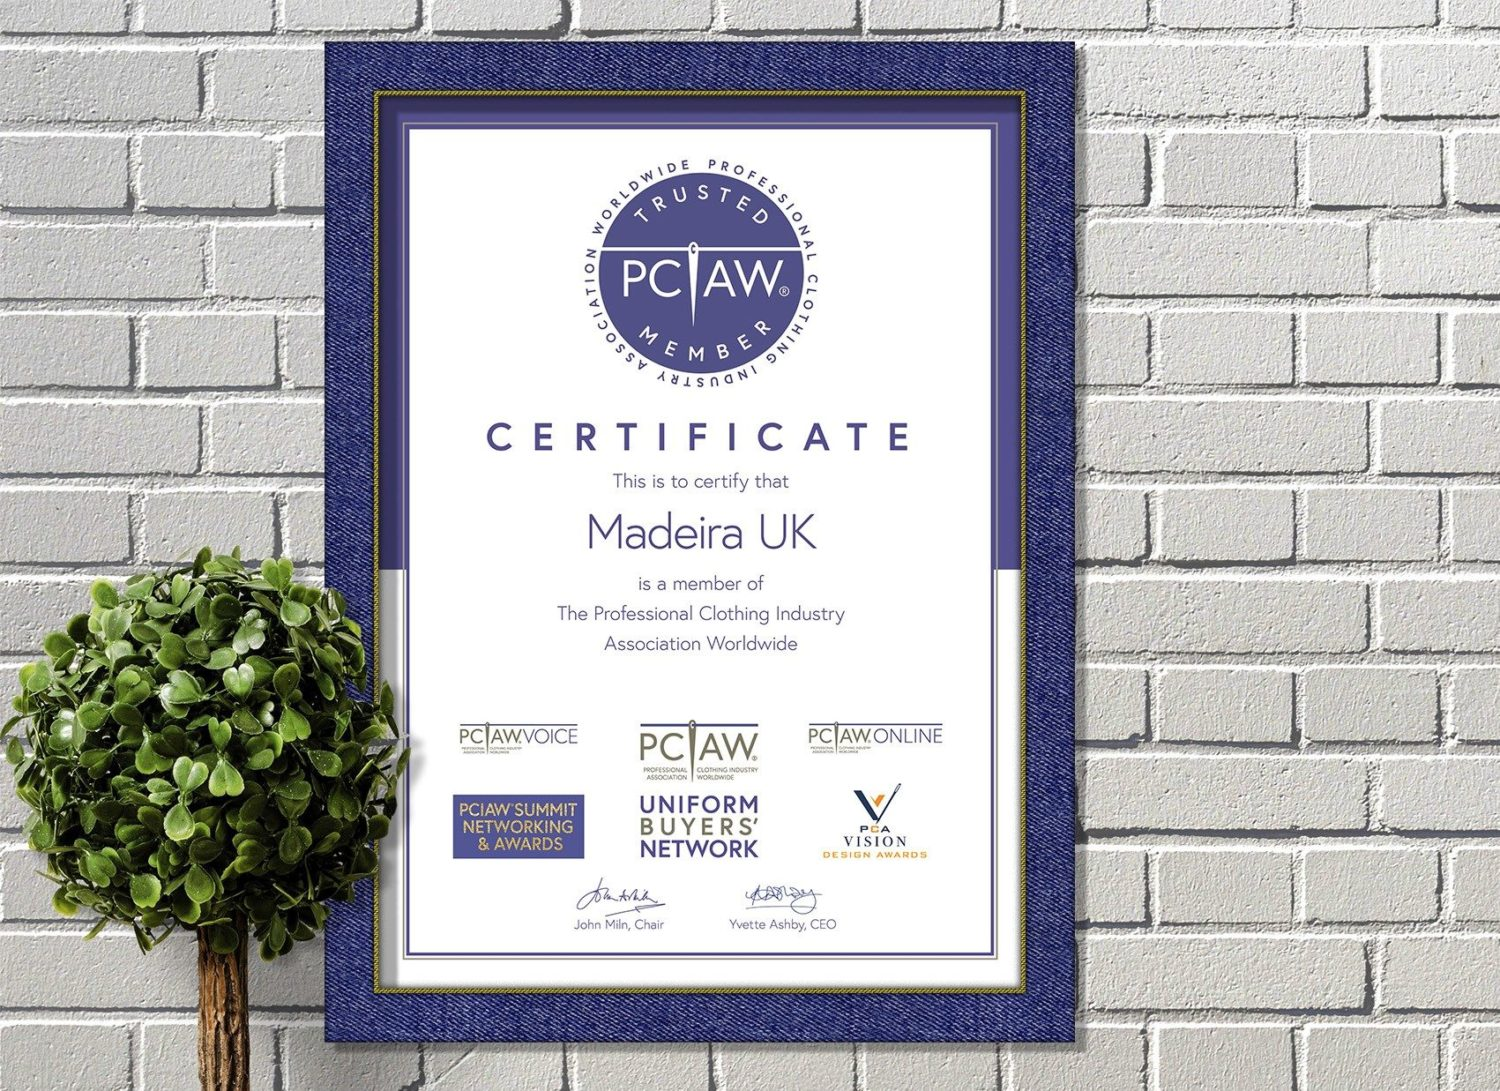 We're excited to welcome Madeira UK, the renowned embroidery thread manufacturer, as the newest Trusted Member of PCIAW®